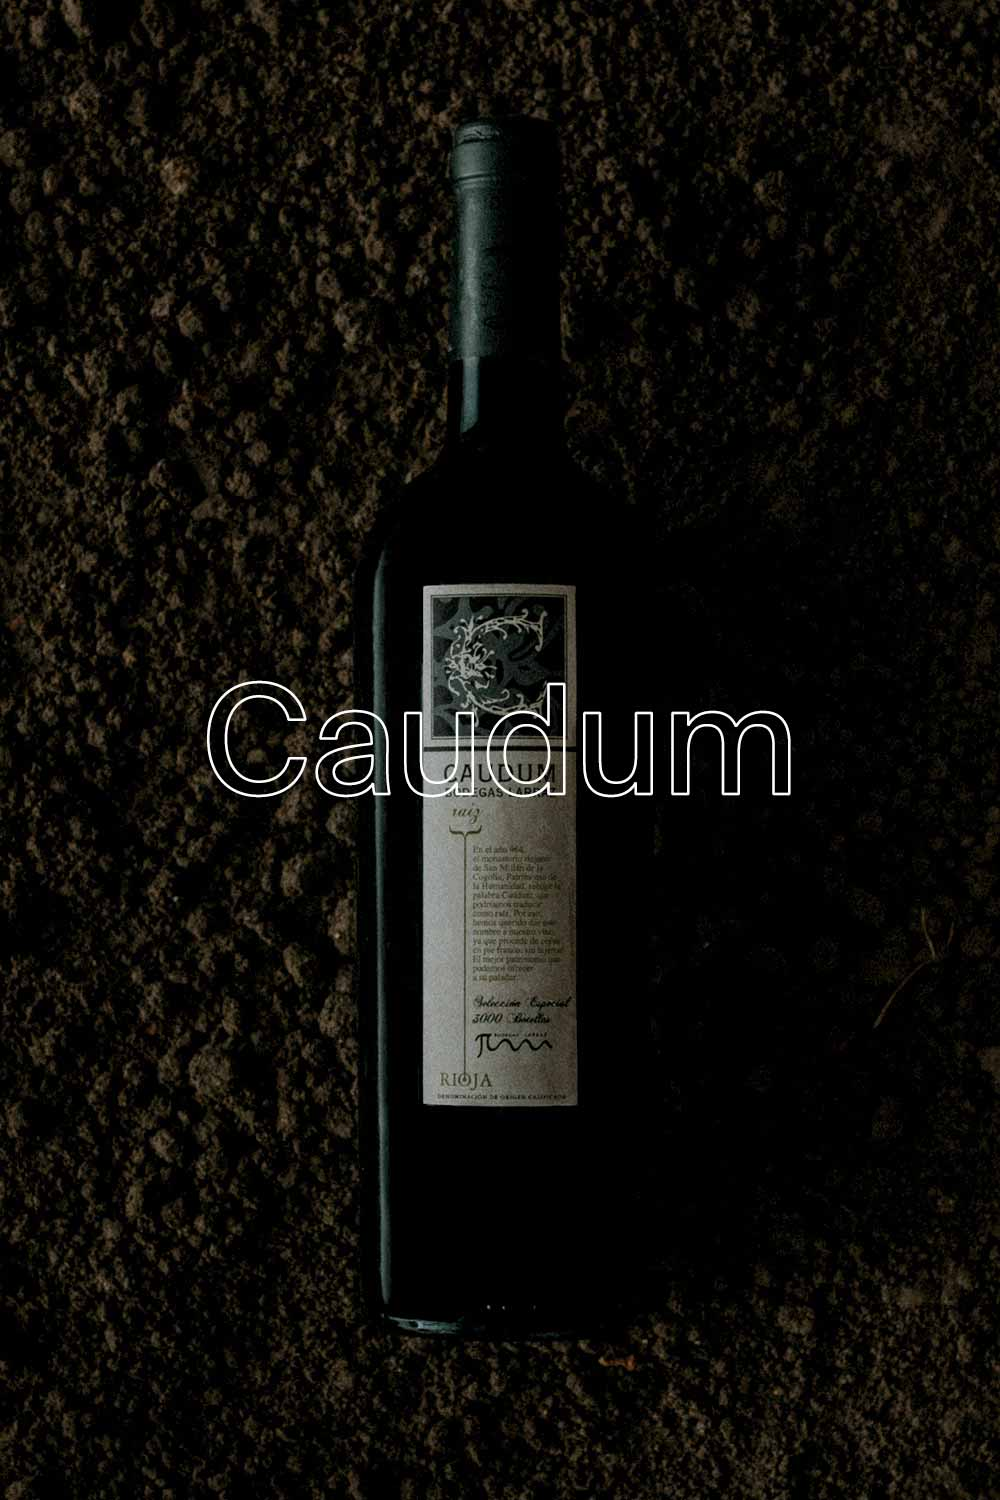 """Caudum has true roots in the earth, a """"pie franco"""" that makes the fruit 100% aligned with the soil. A coherence that is felt in every sip of this wine. A wine to enjoy with those who make you think about the important things in life. - APPELLATION RIOJA ALTA"""